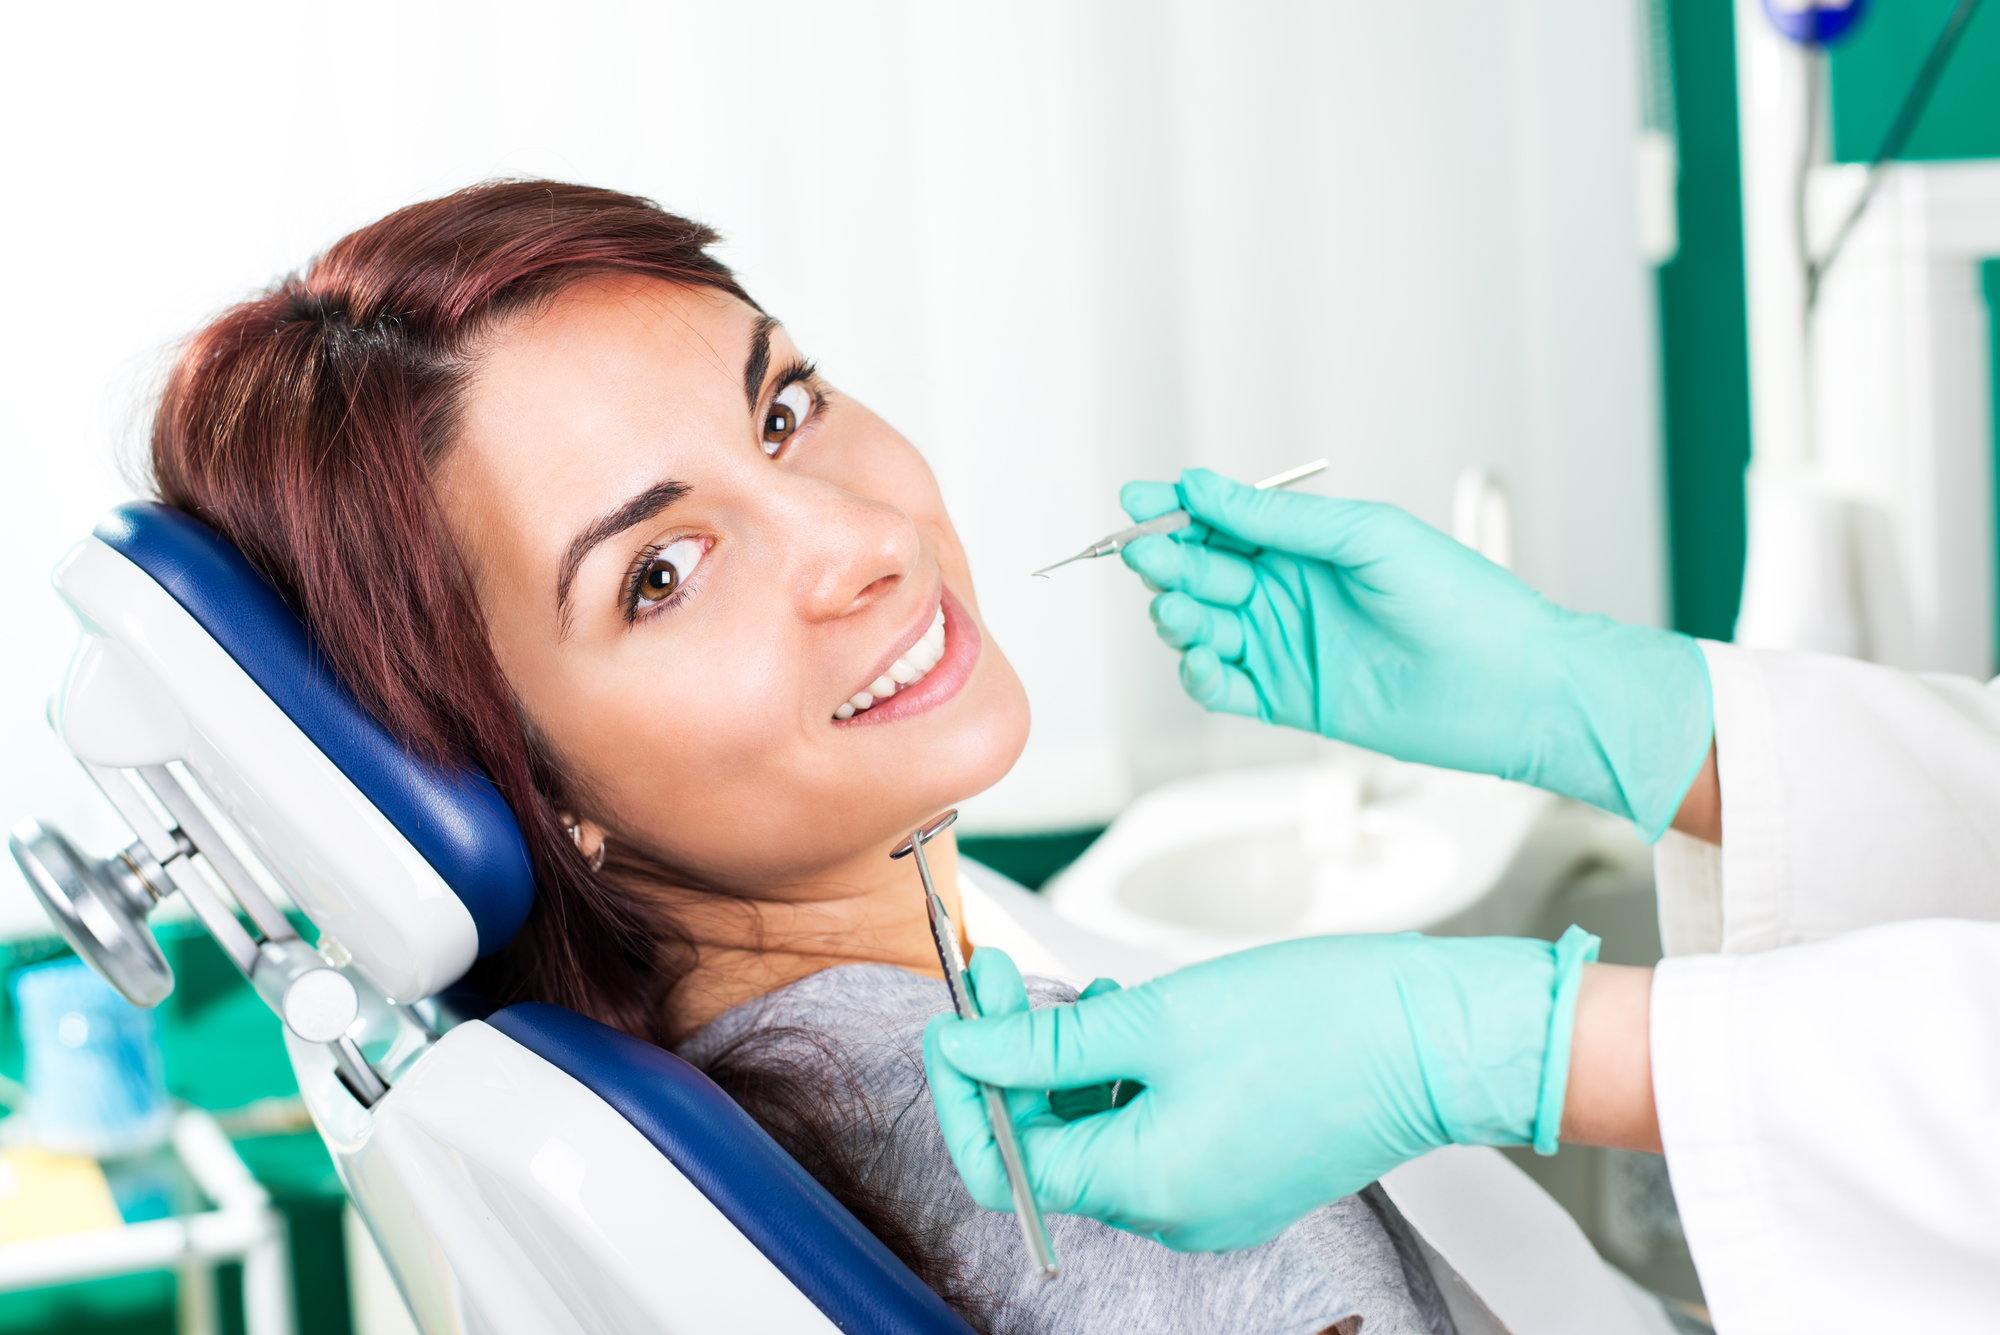 where is the best teeth whitening west palm beach?